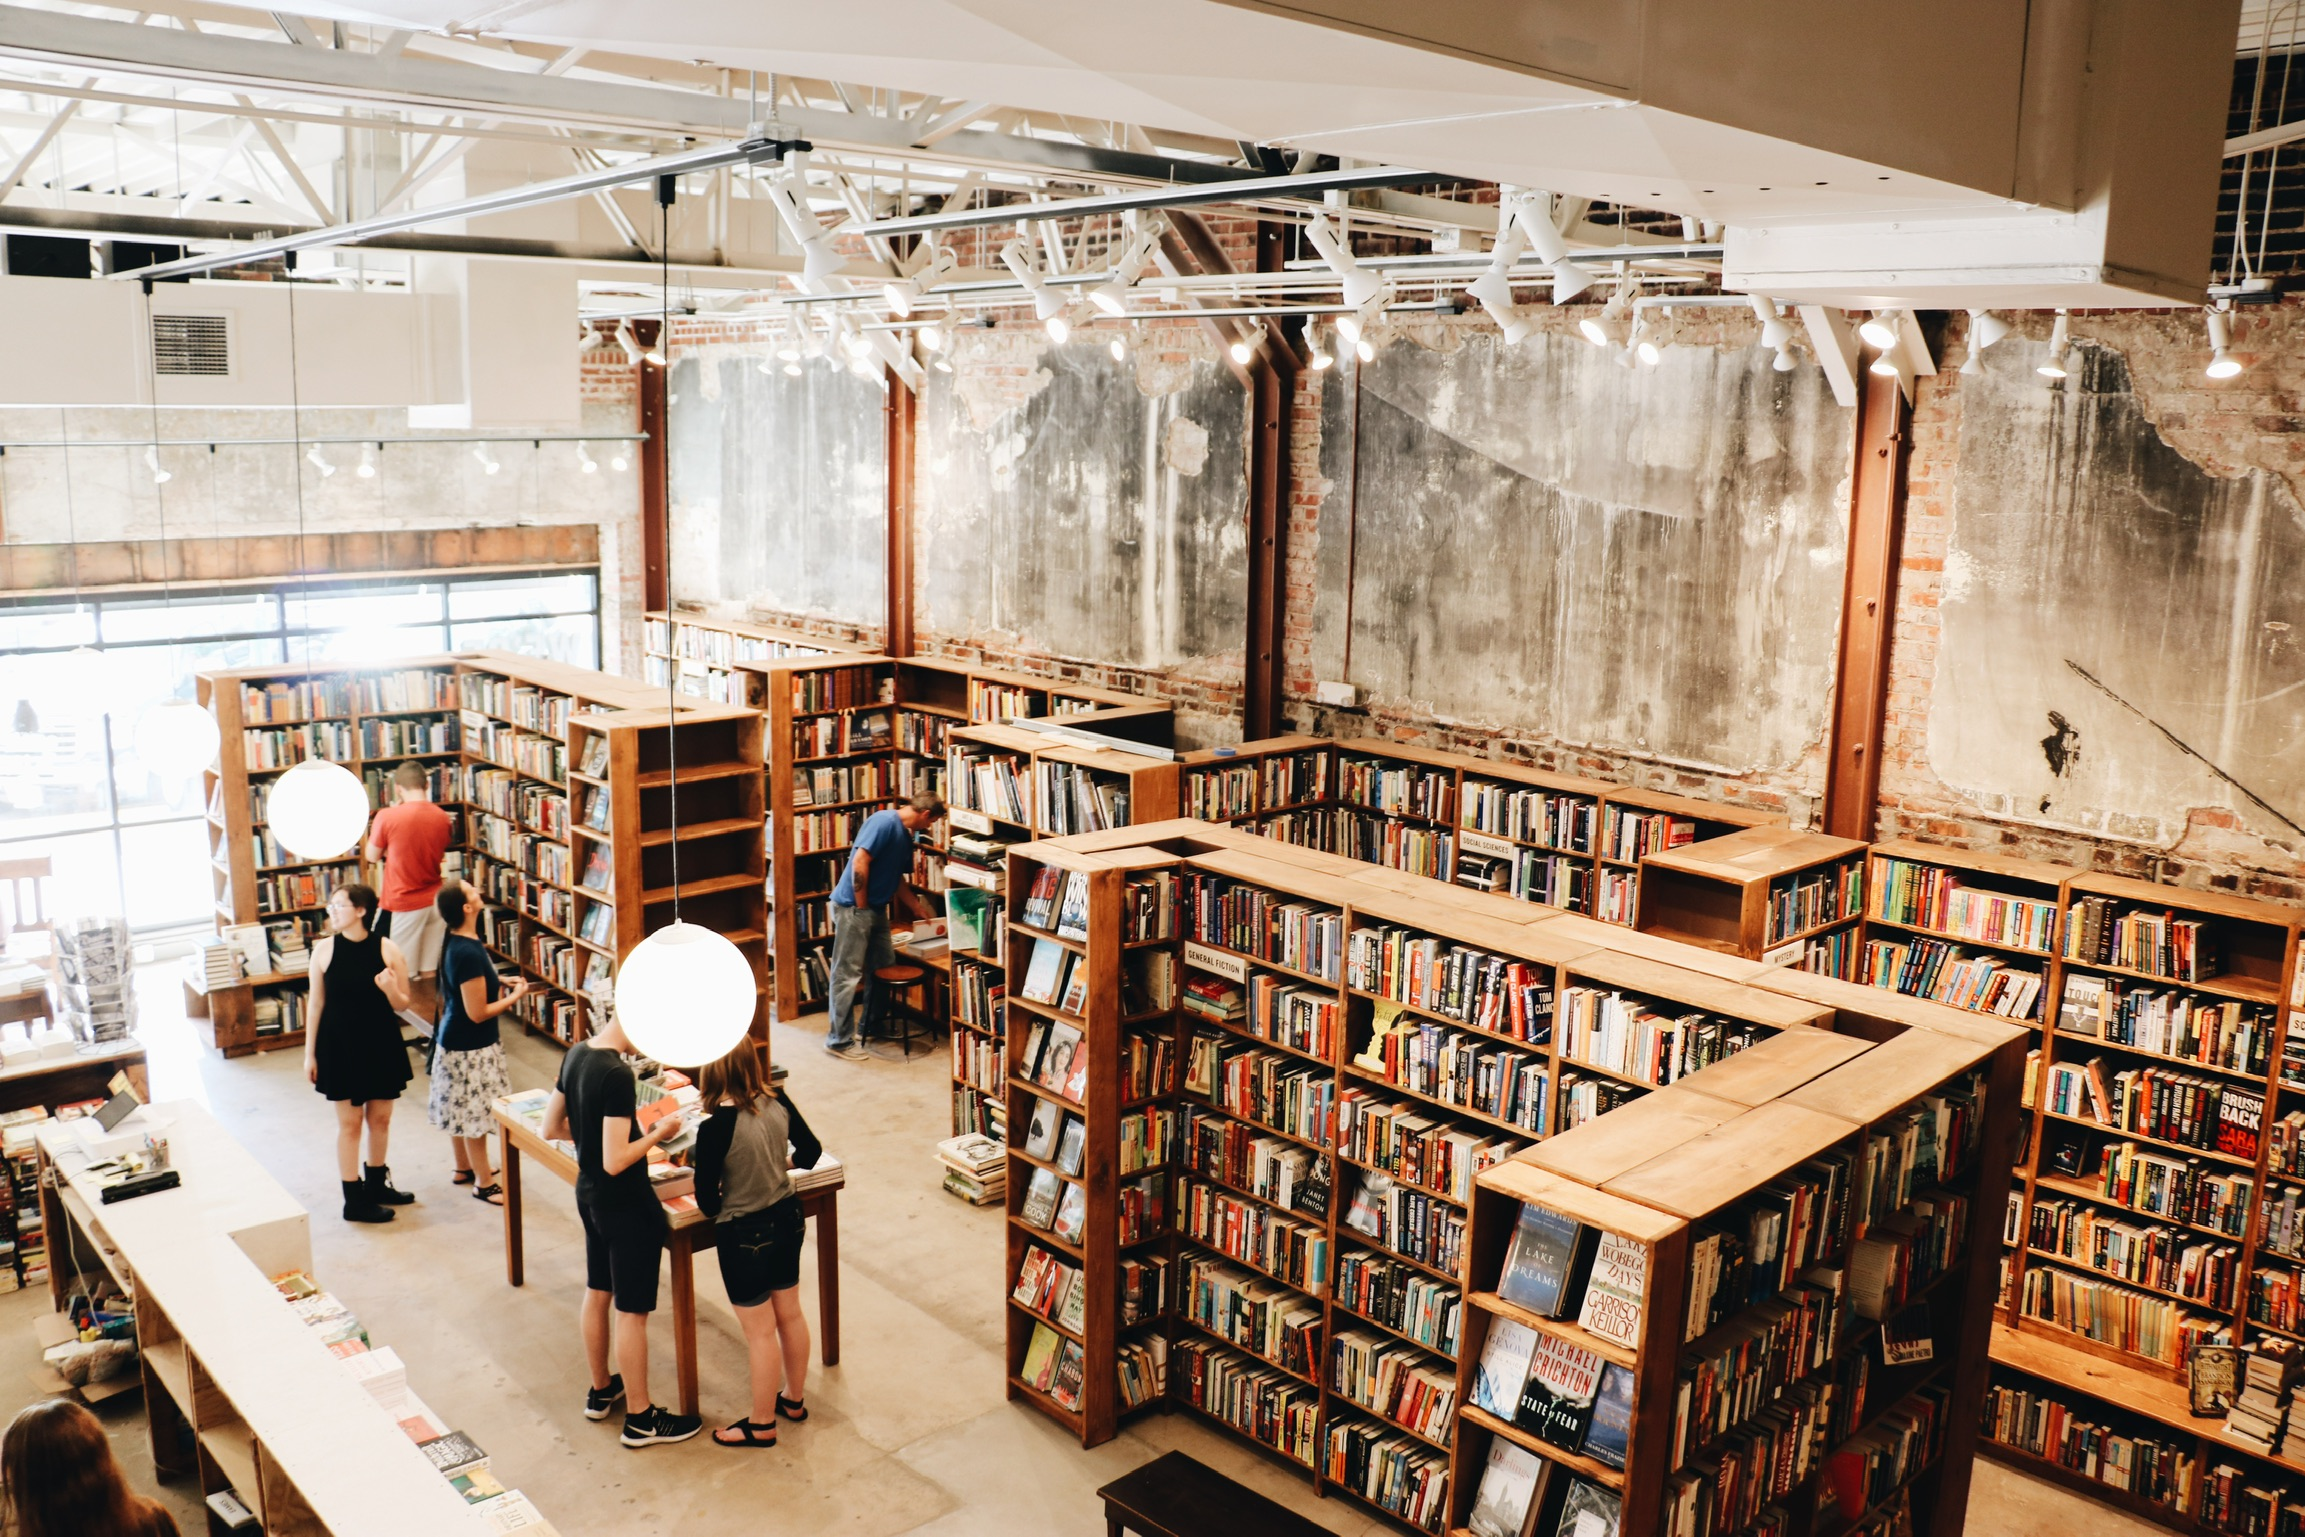 AGGIEVILLE LOCATION - After a devastating fire during renovations in 2017, the Dusty Bookshelf at the Co-op is back open at the corner of Manhattan and Moro. Stop by to shop both new and used books, and grab a cup of Intelligentsia coffee at our front counter.